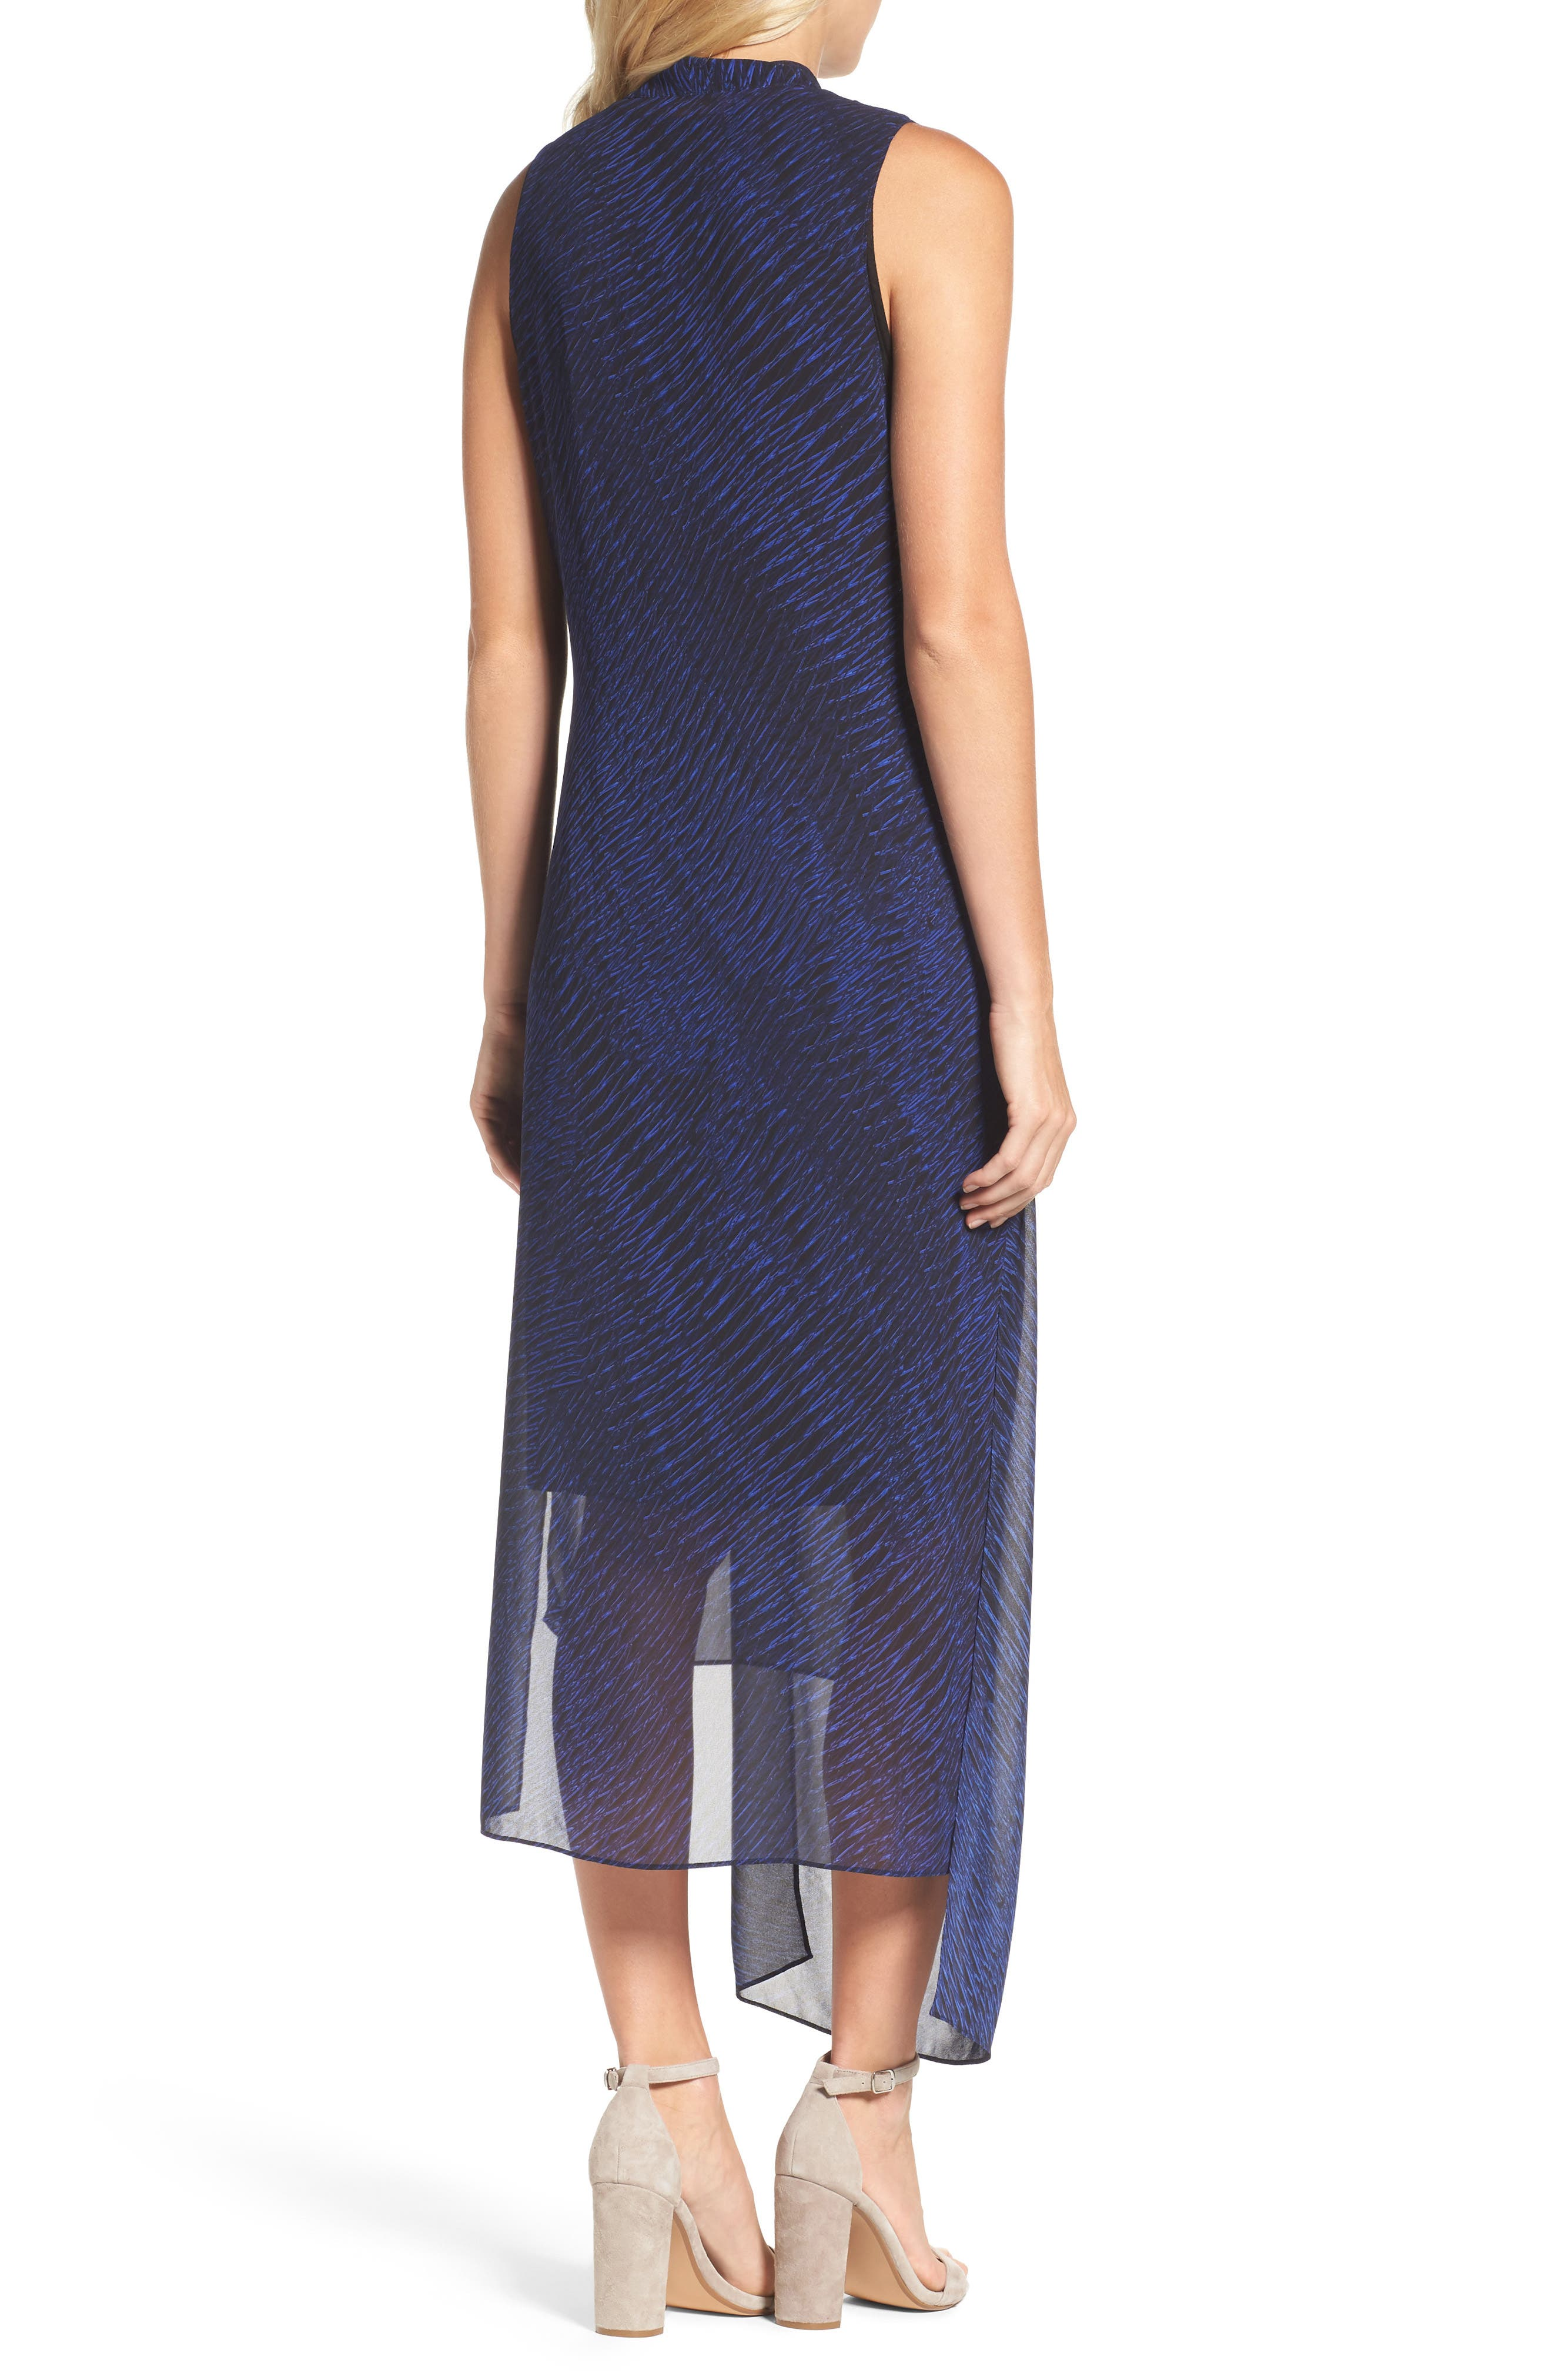 Blue Streaks Midi Dress,                             Alternate thumbnail 2, color,                             465